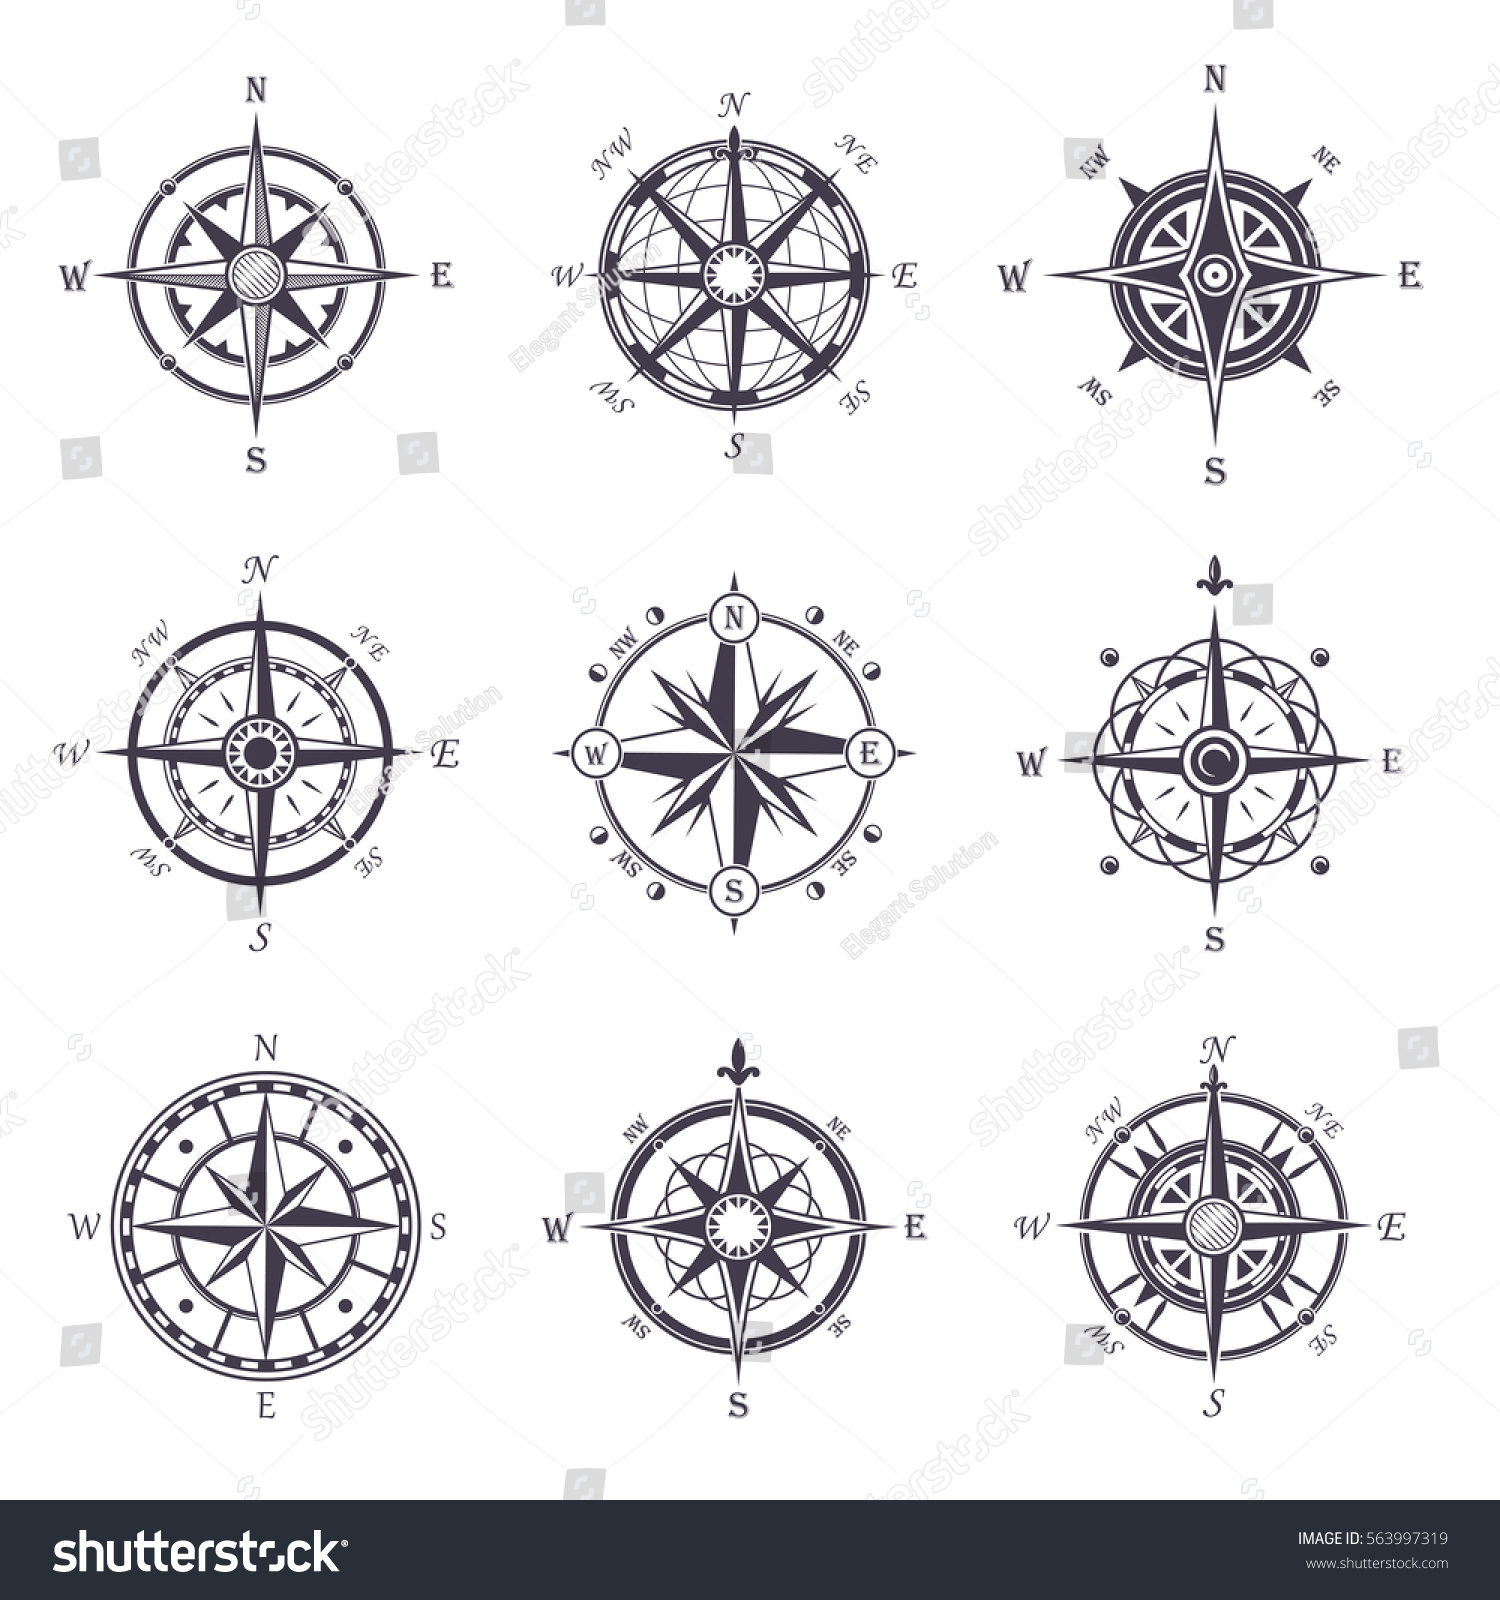 Isolated Vintage Old Compass Rose Icons Stock Vector